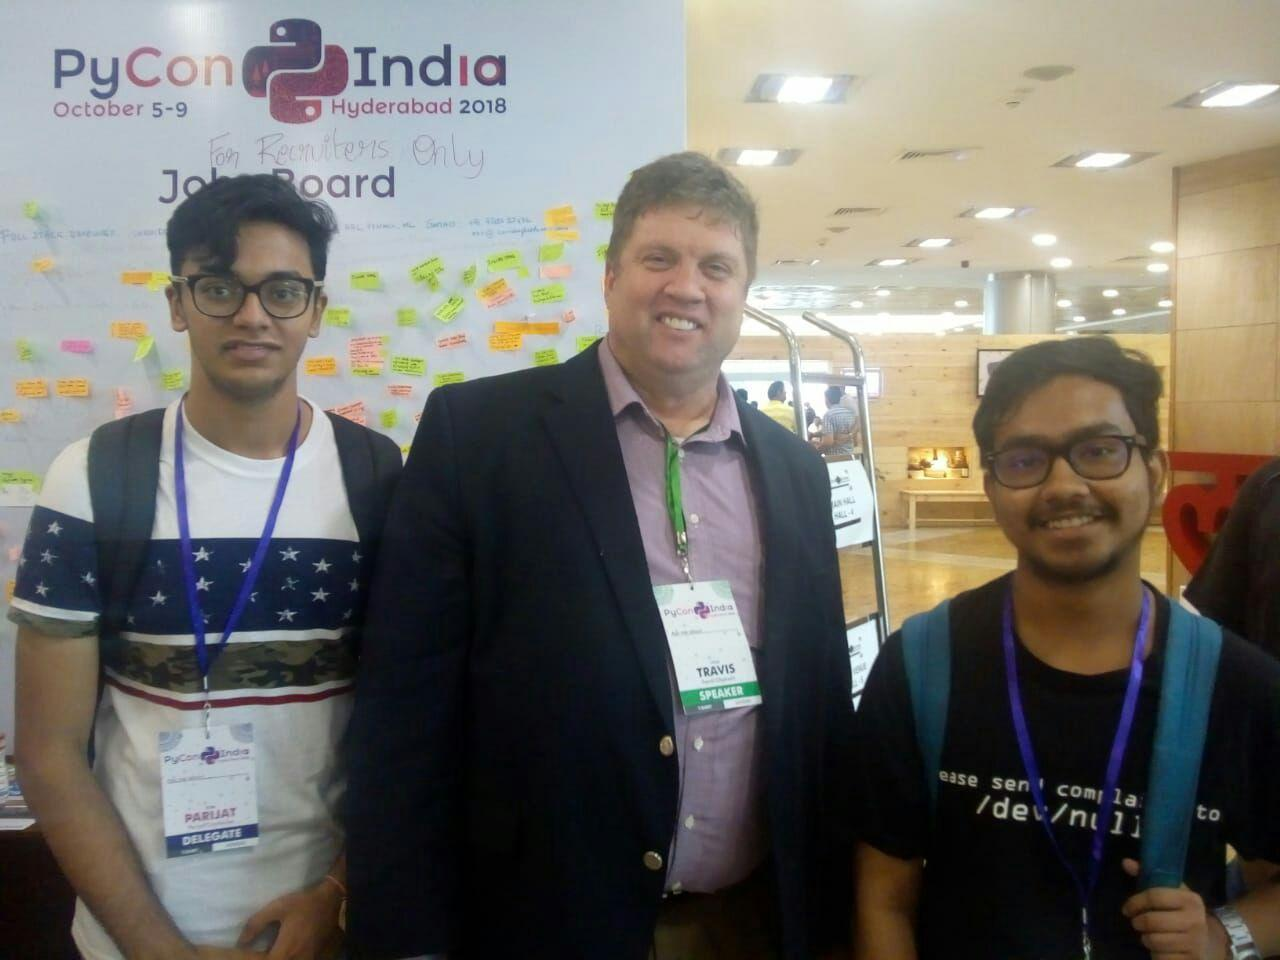 Travis Oliphant and Dedipyaman Das at Pycon India 2018